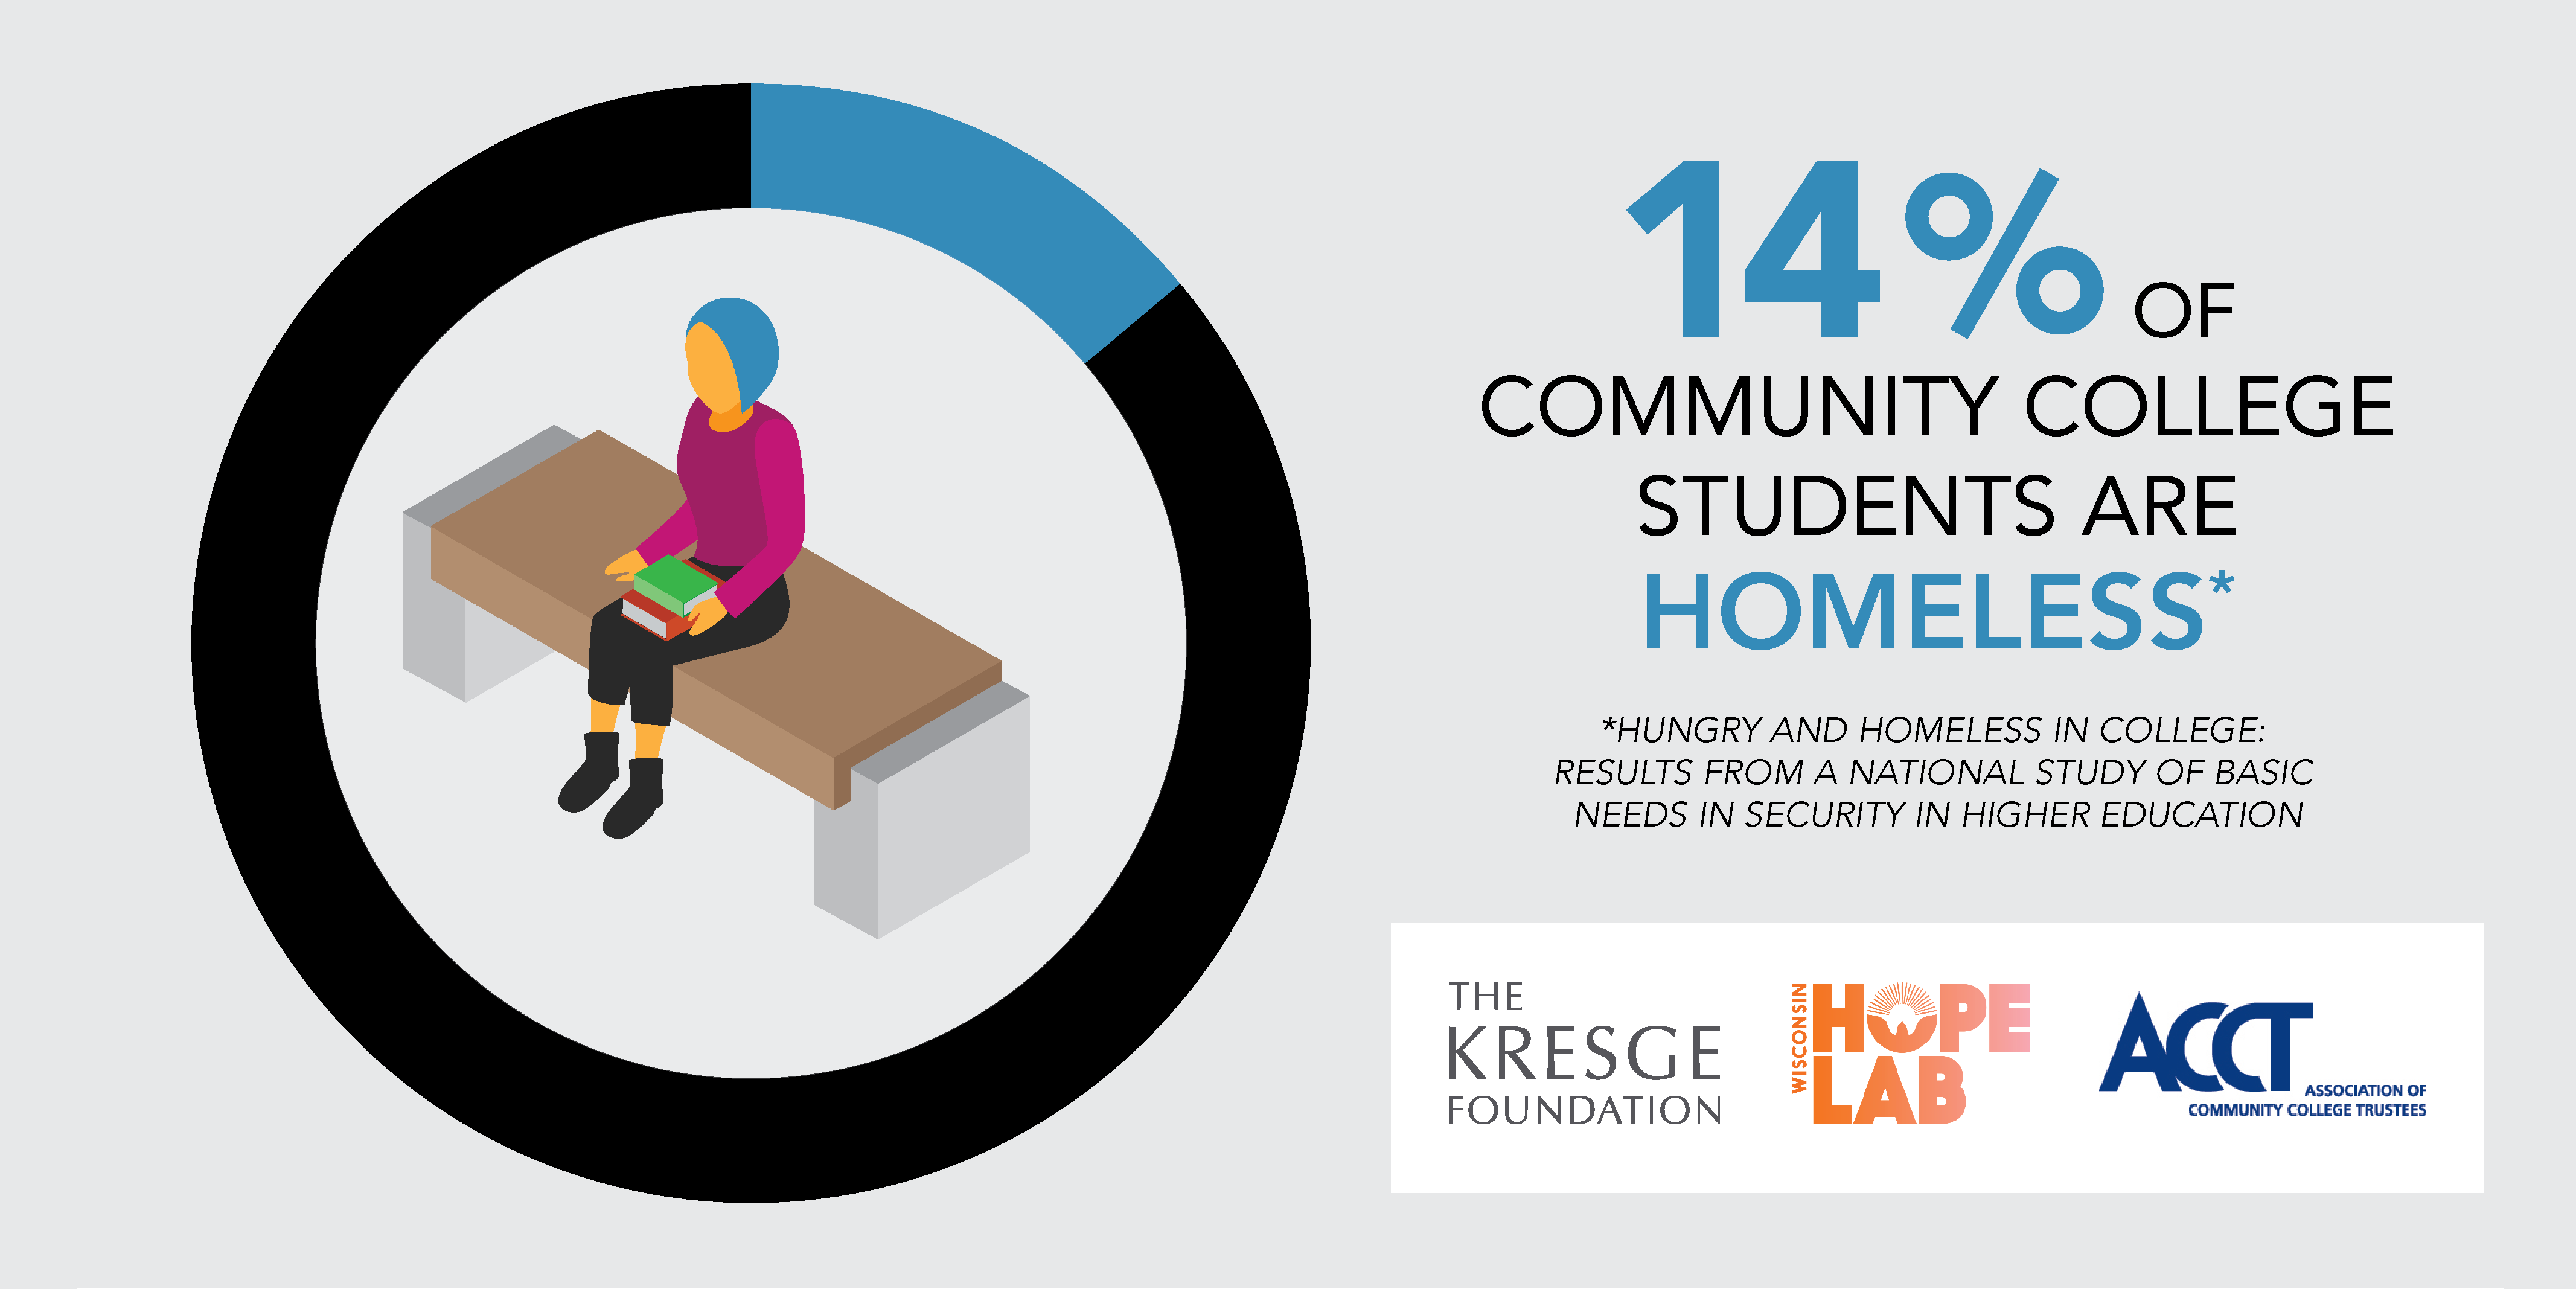 Inforgraphic shows that 14% of community college students are homeless